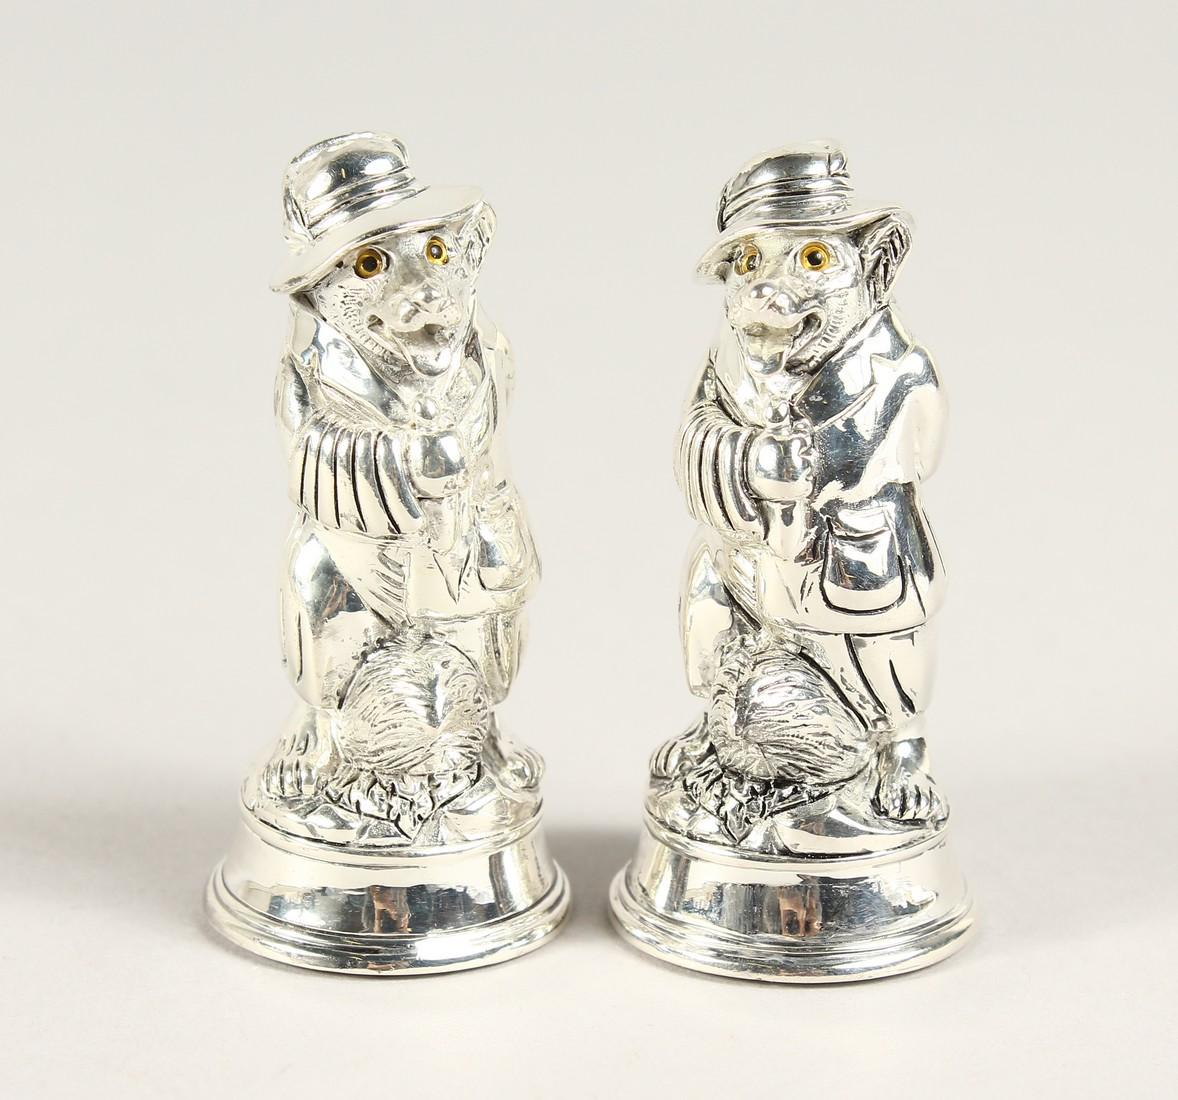 A PAIR OF SILVER PLATE FOX SALT AND PEPPERS